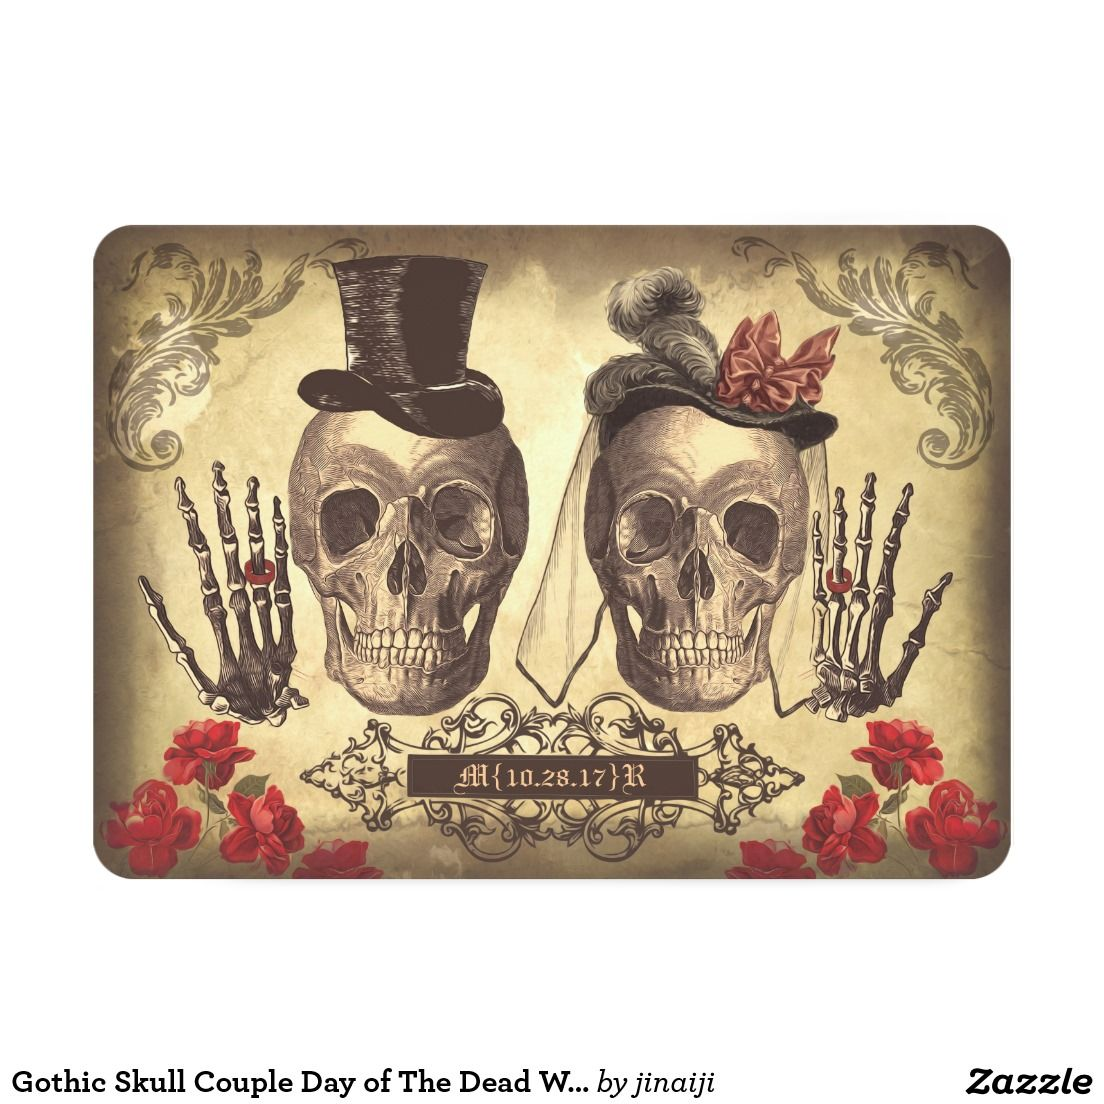 Gothic Skull Couple Day Of The Dead Wedding Invite